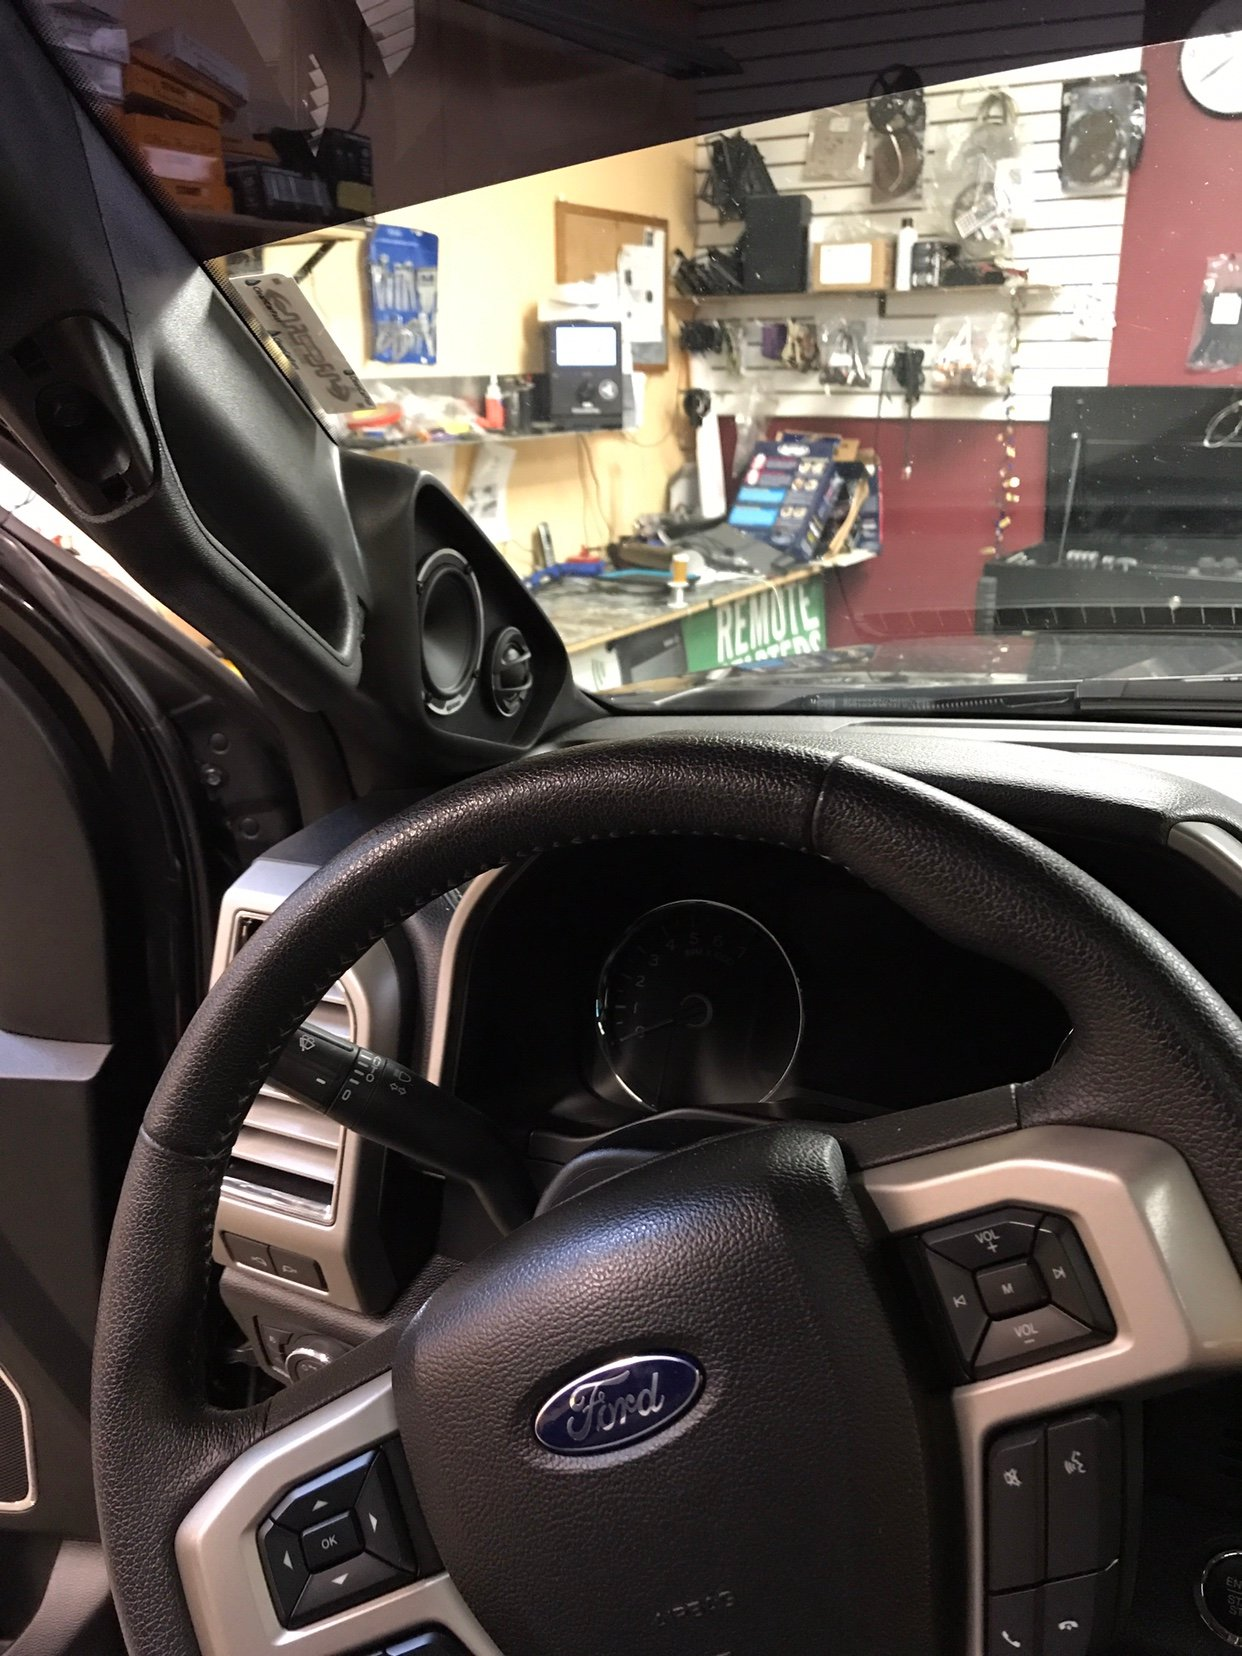 2016 Ford F150 Lariat FX4 Build - Car Audio | DiyMobileAudio com